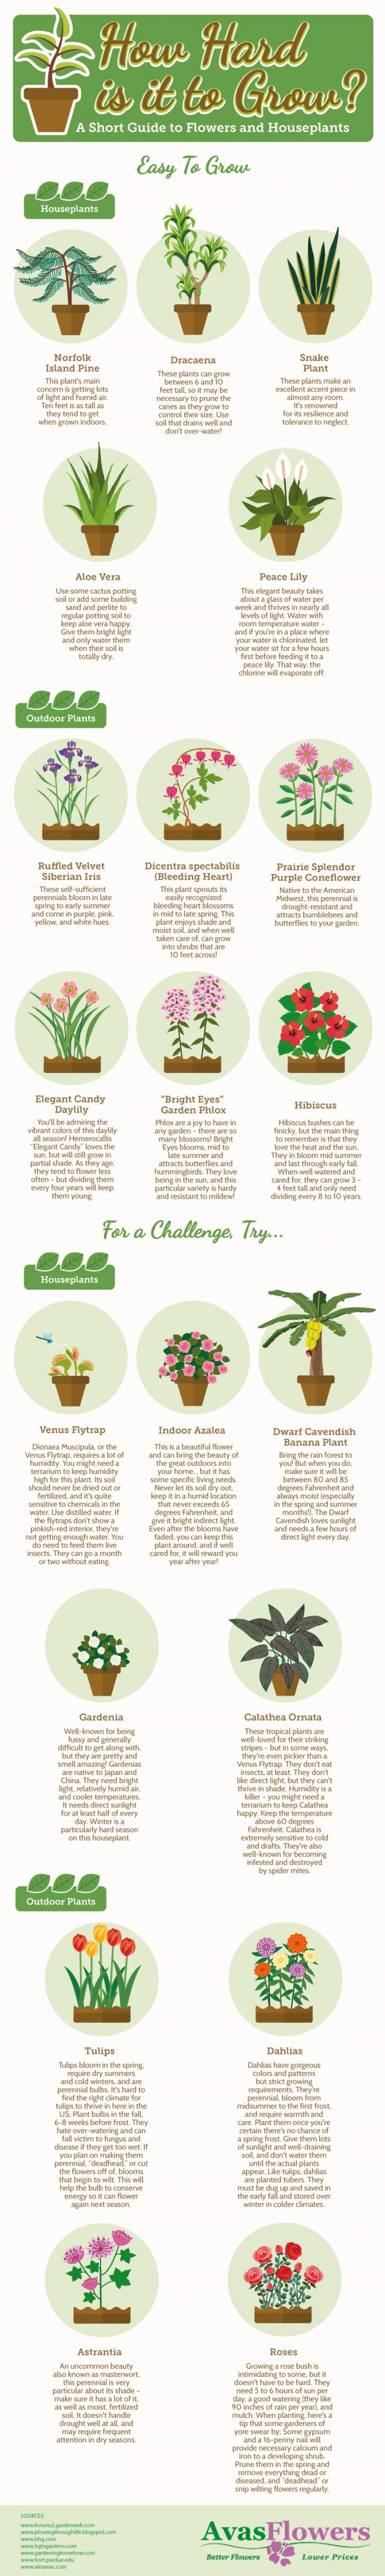 How Hard Is It To Grow - A Short Guide To Flowes And Houseplants